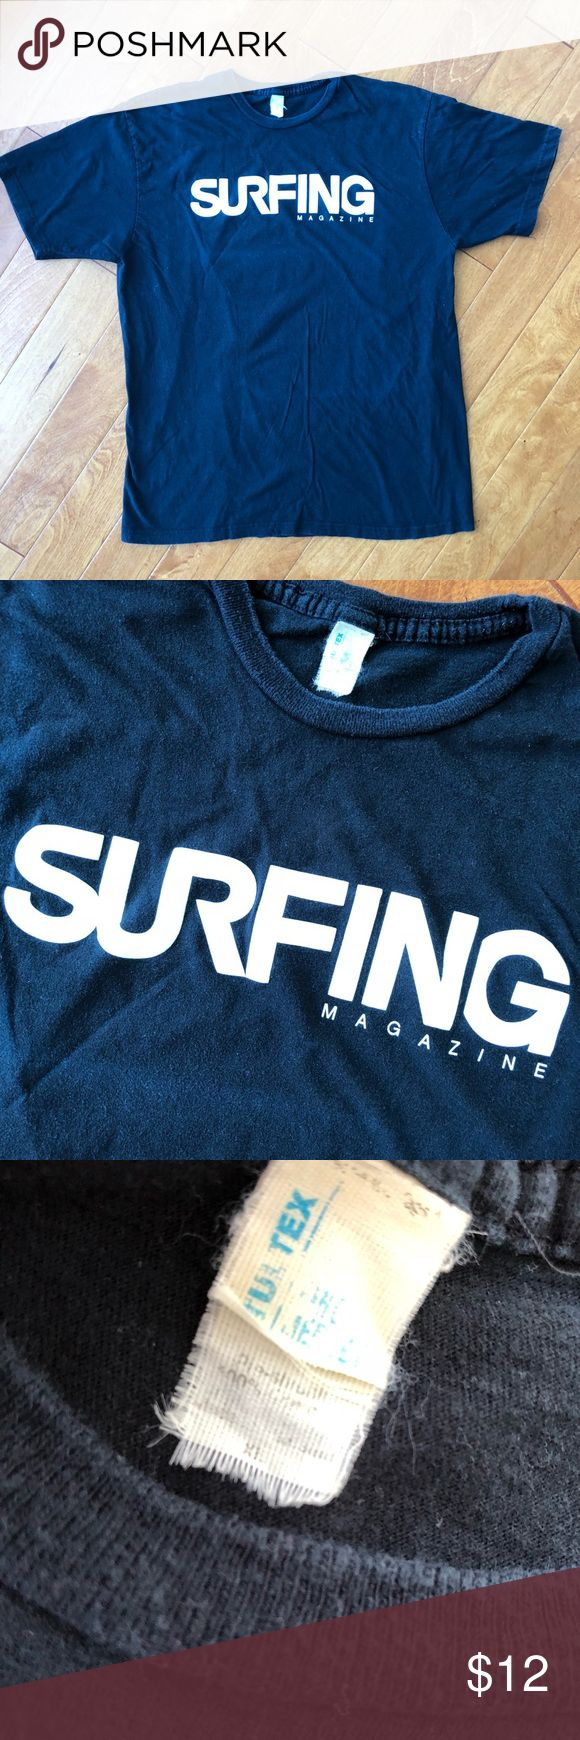 Vintage Surfing Magazine t-shirt XL As pictured black shirt with white writing. No stains. Smoke free home. Shirts Tees - Short Sleeve